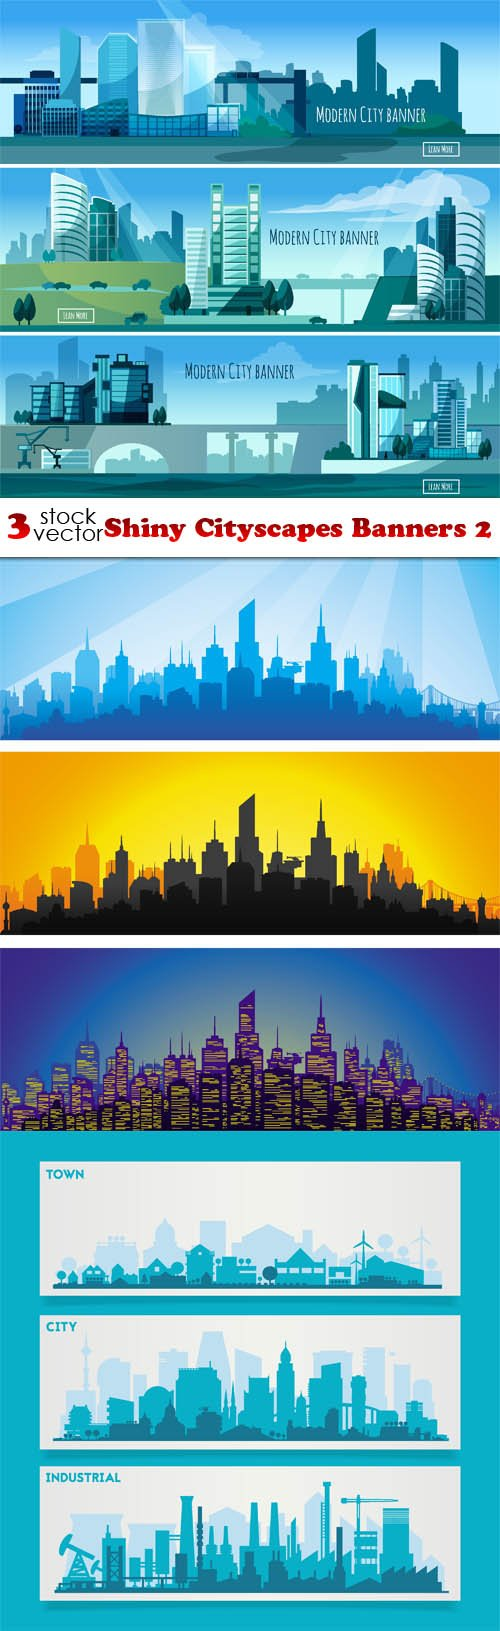 Vectors - Shiny Cityscapes Banners 2